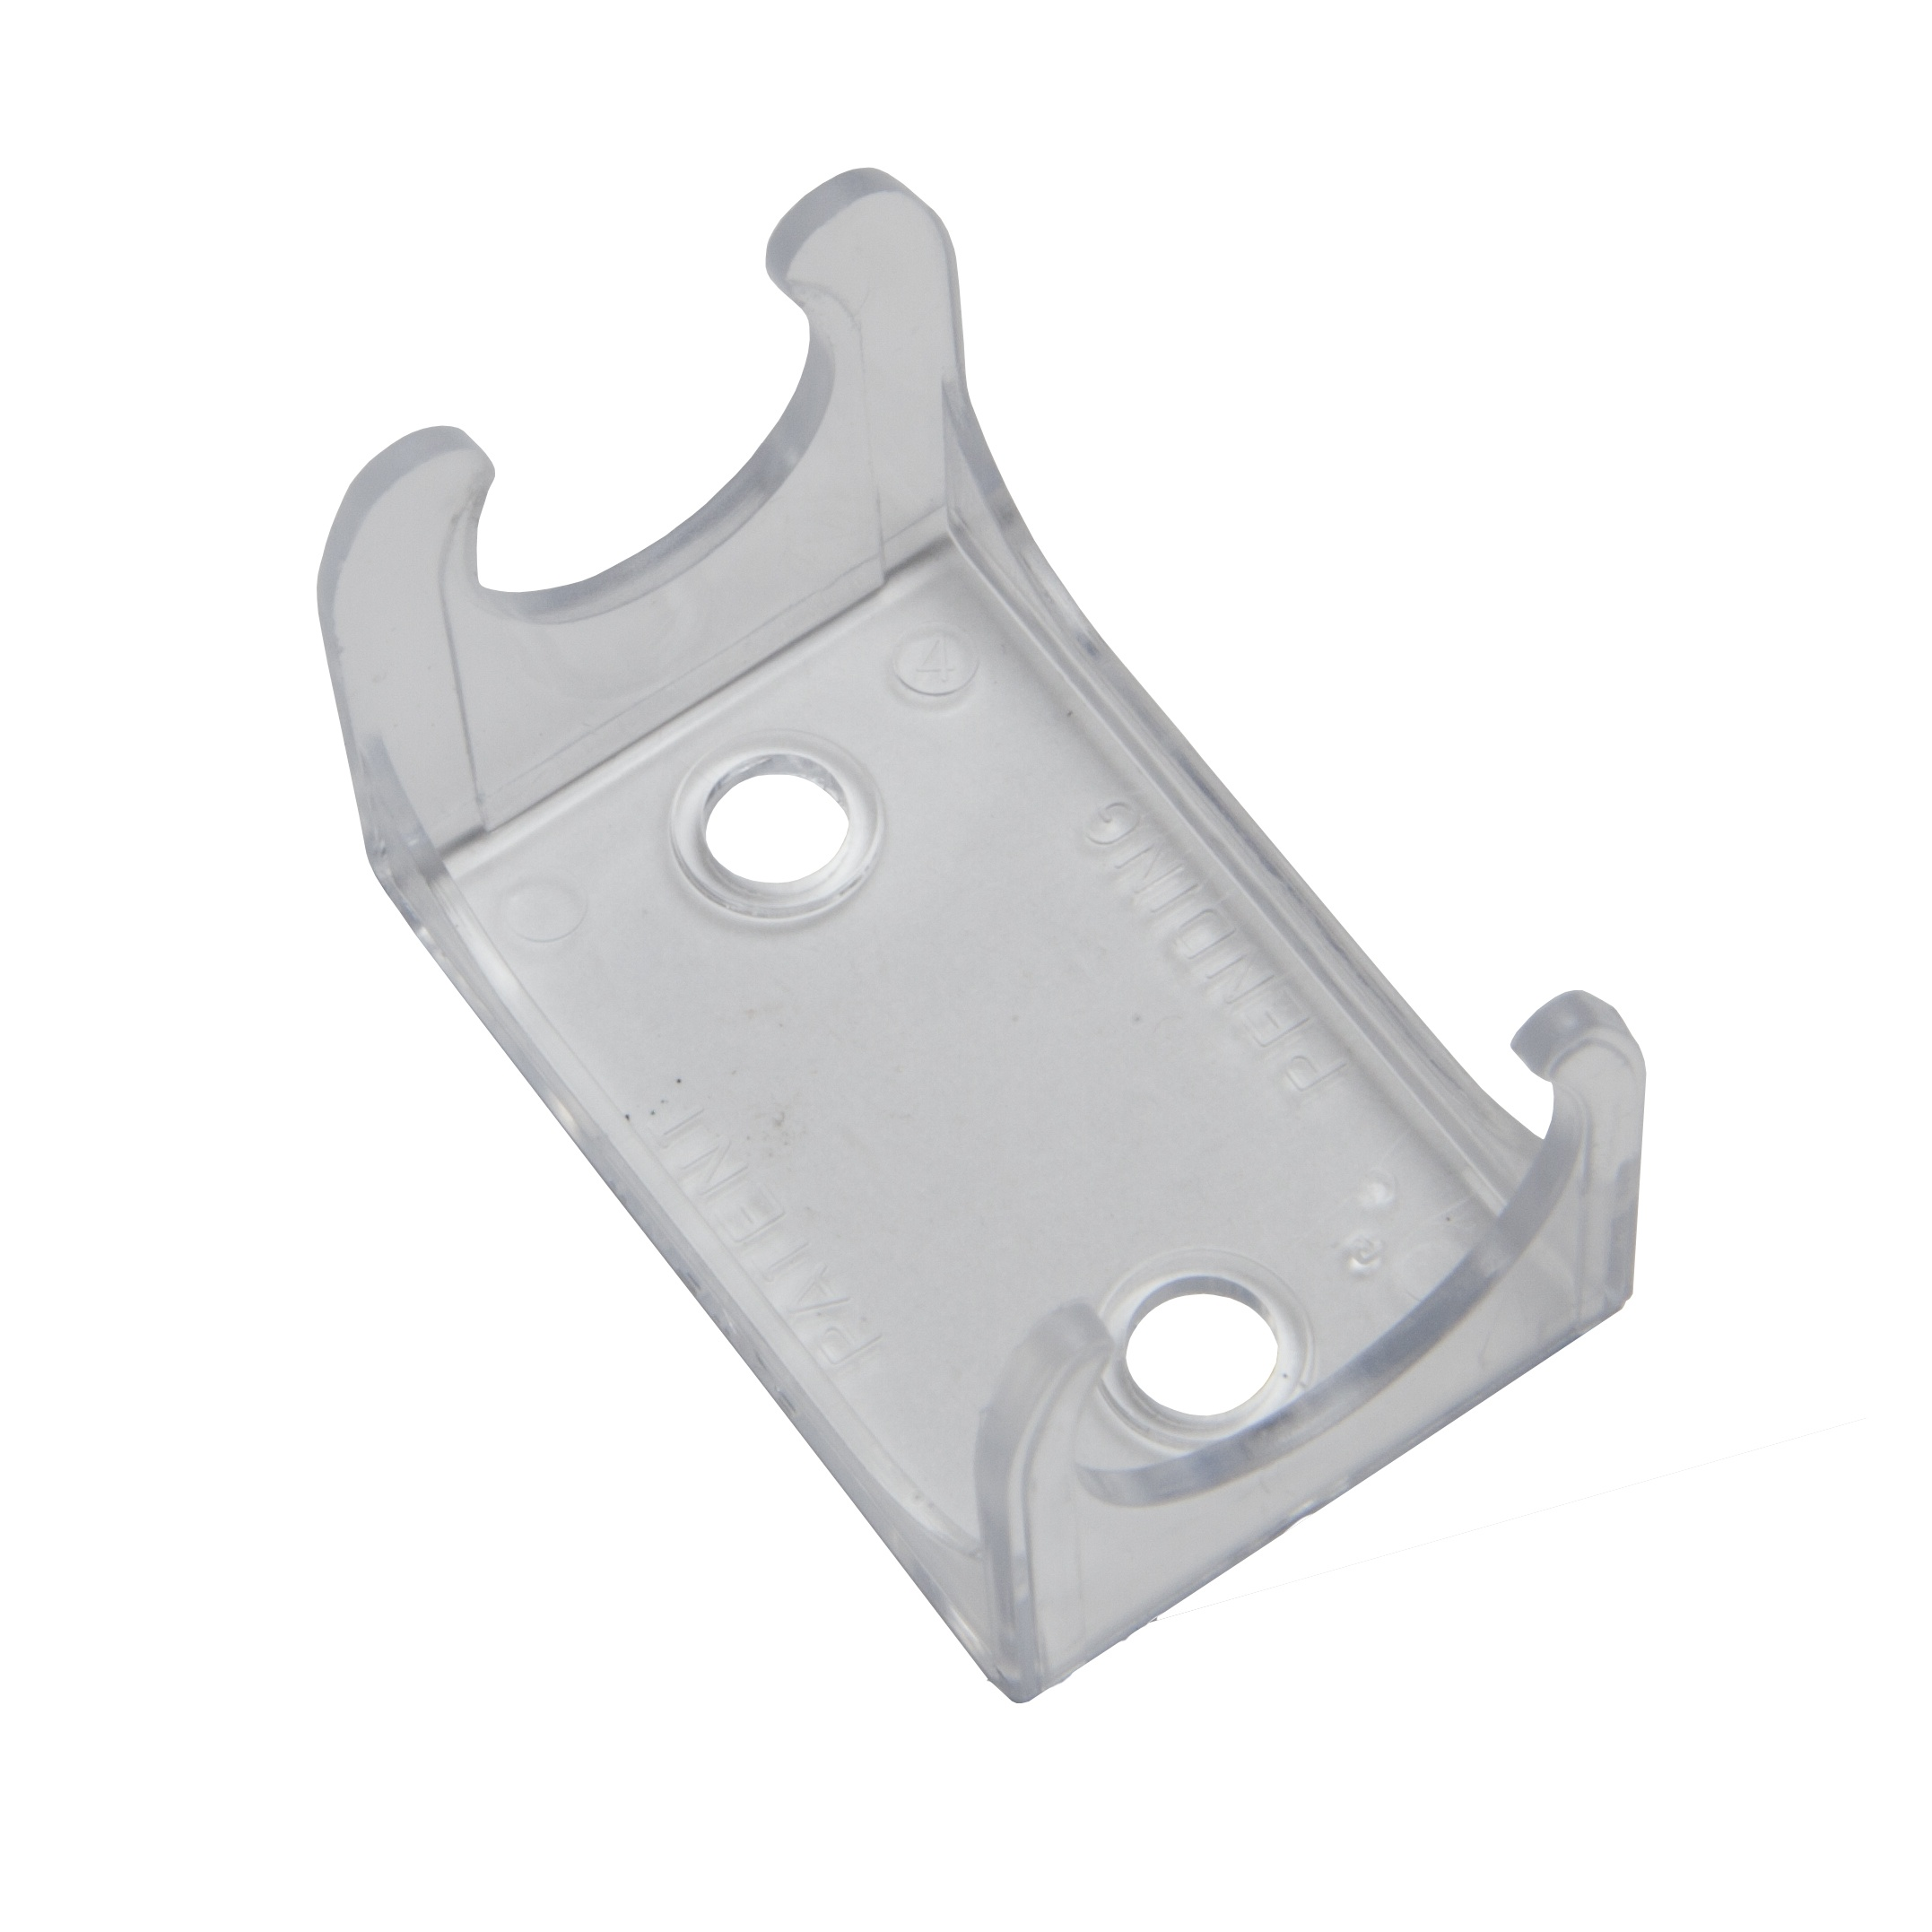 C7 And C9 Accessories Combo C Clip 100 Pack